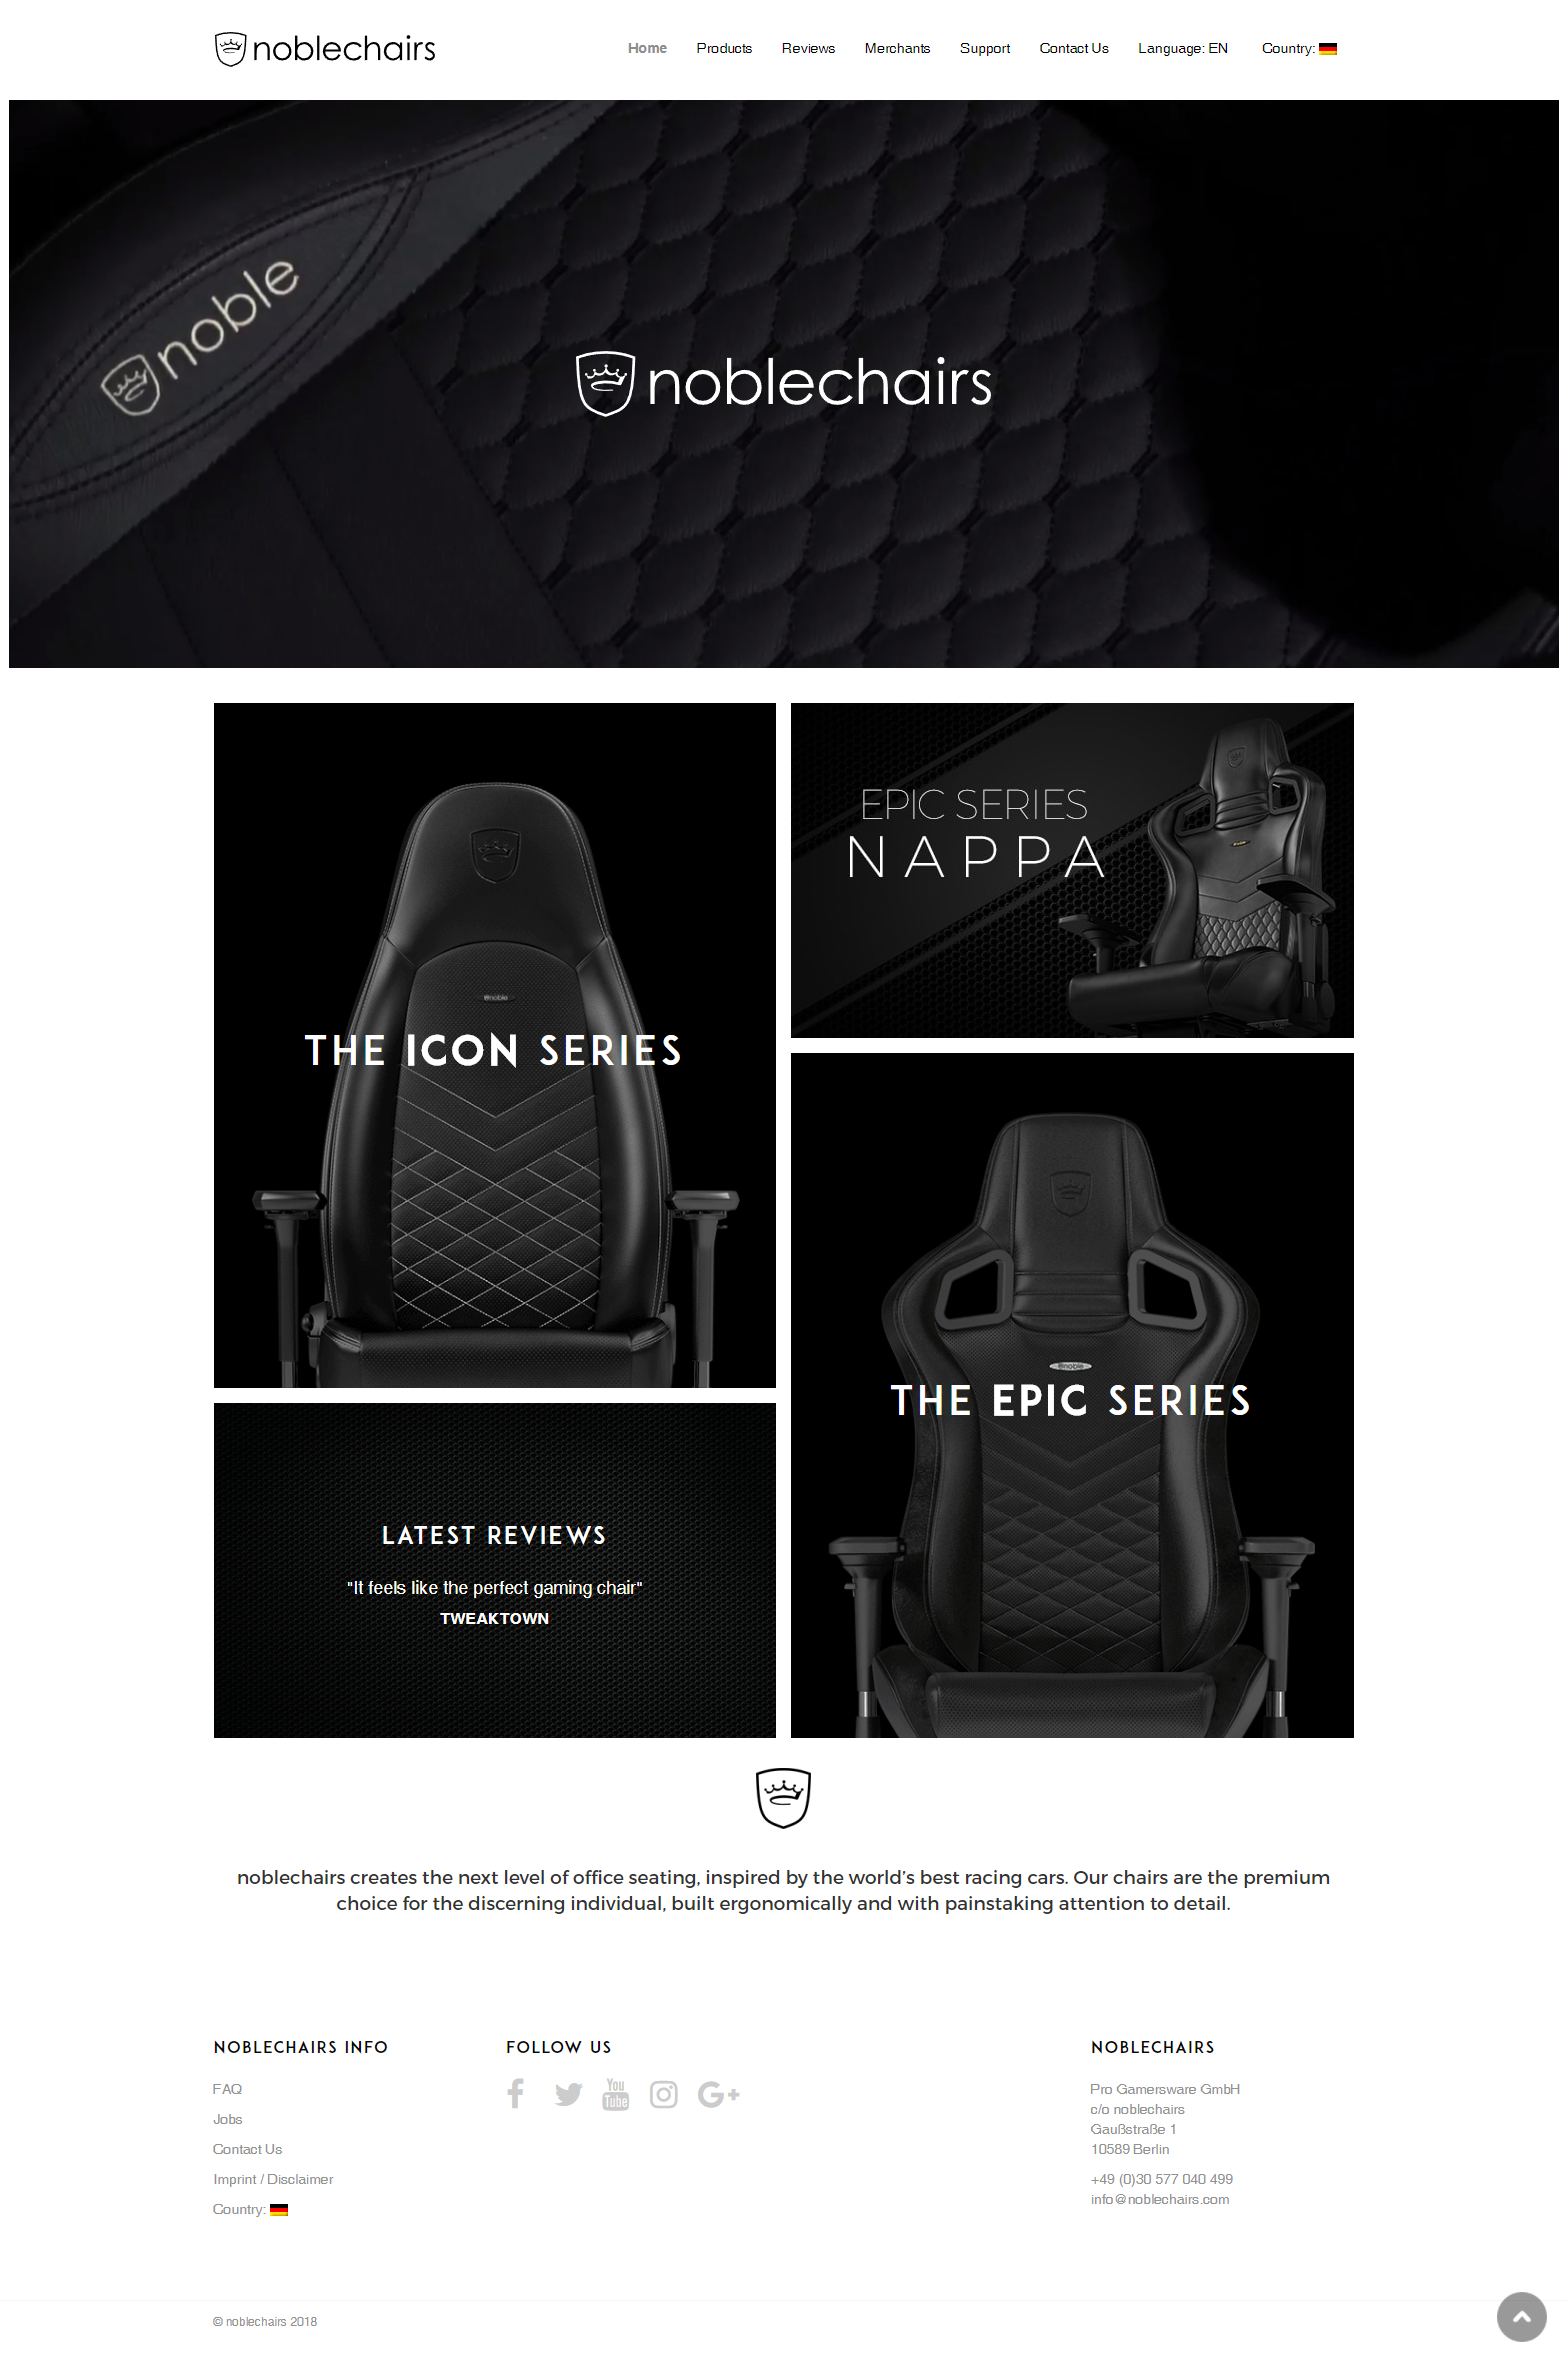 screencapture-noblechairs-2018-04-18-11_46_33